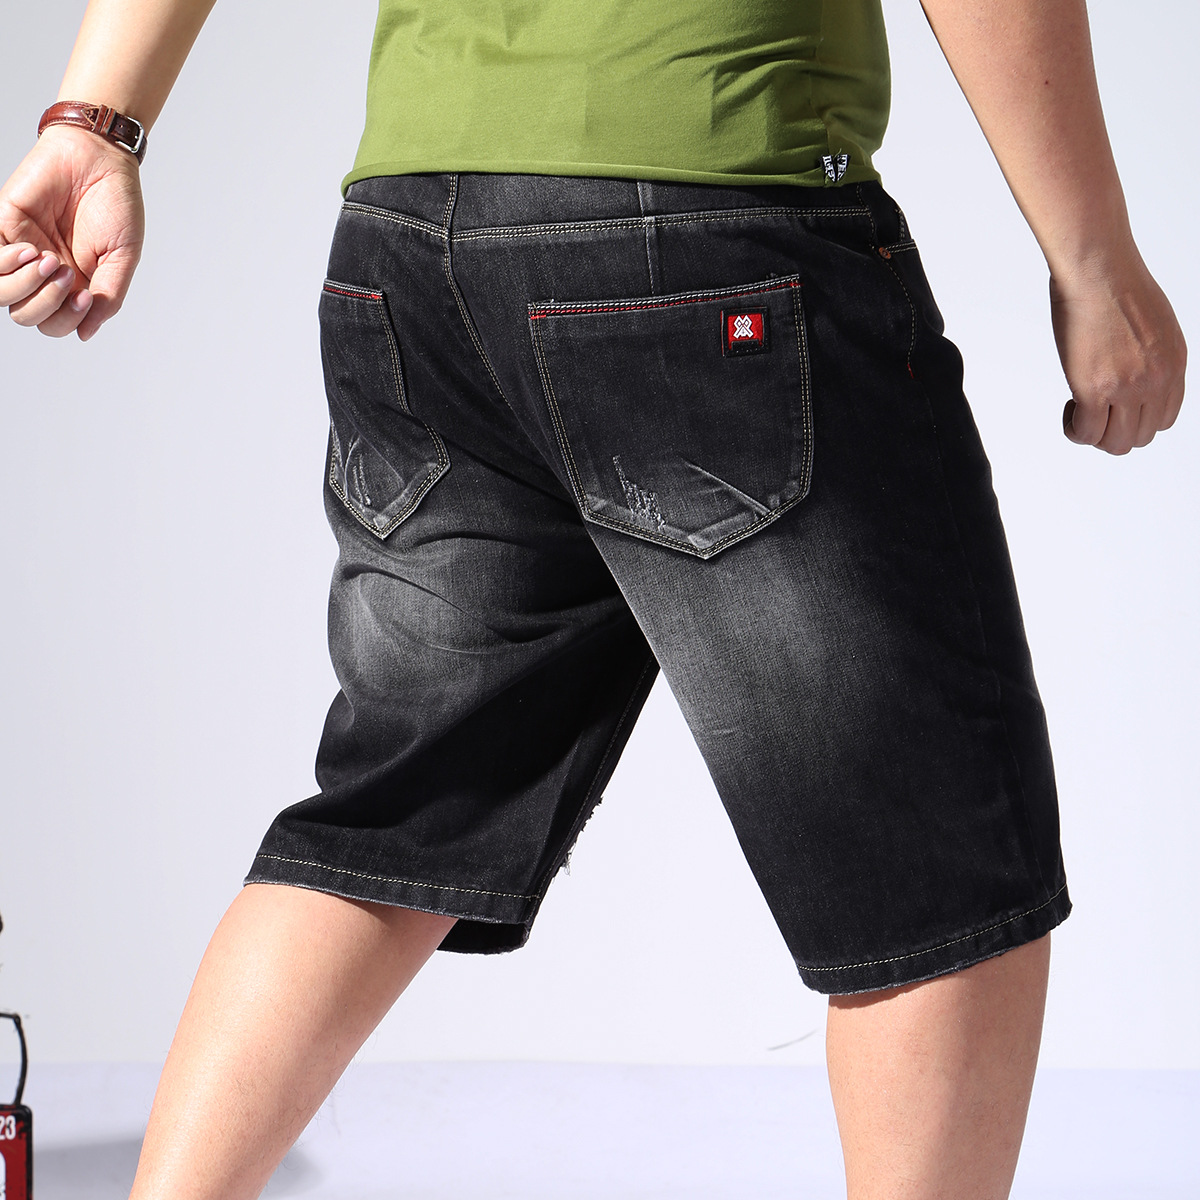 Jeans Shorts Big Size 5XL 7xl 9xl Plus Loose Vogue Bermuda Male Hot Men Knee Length Cowboy Short Trouser Casual Men Shorts Denim